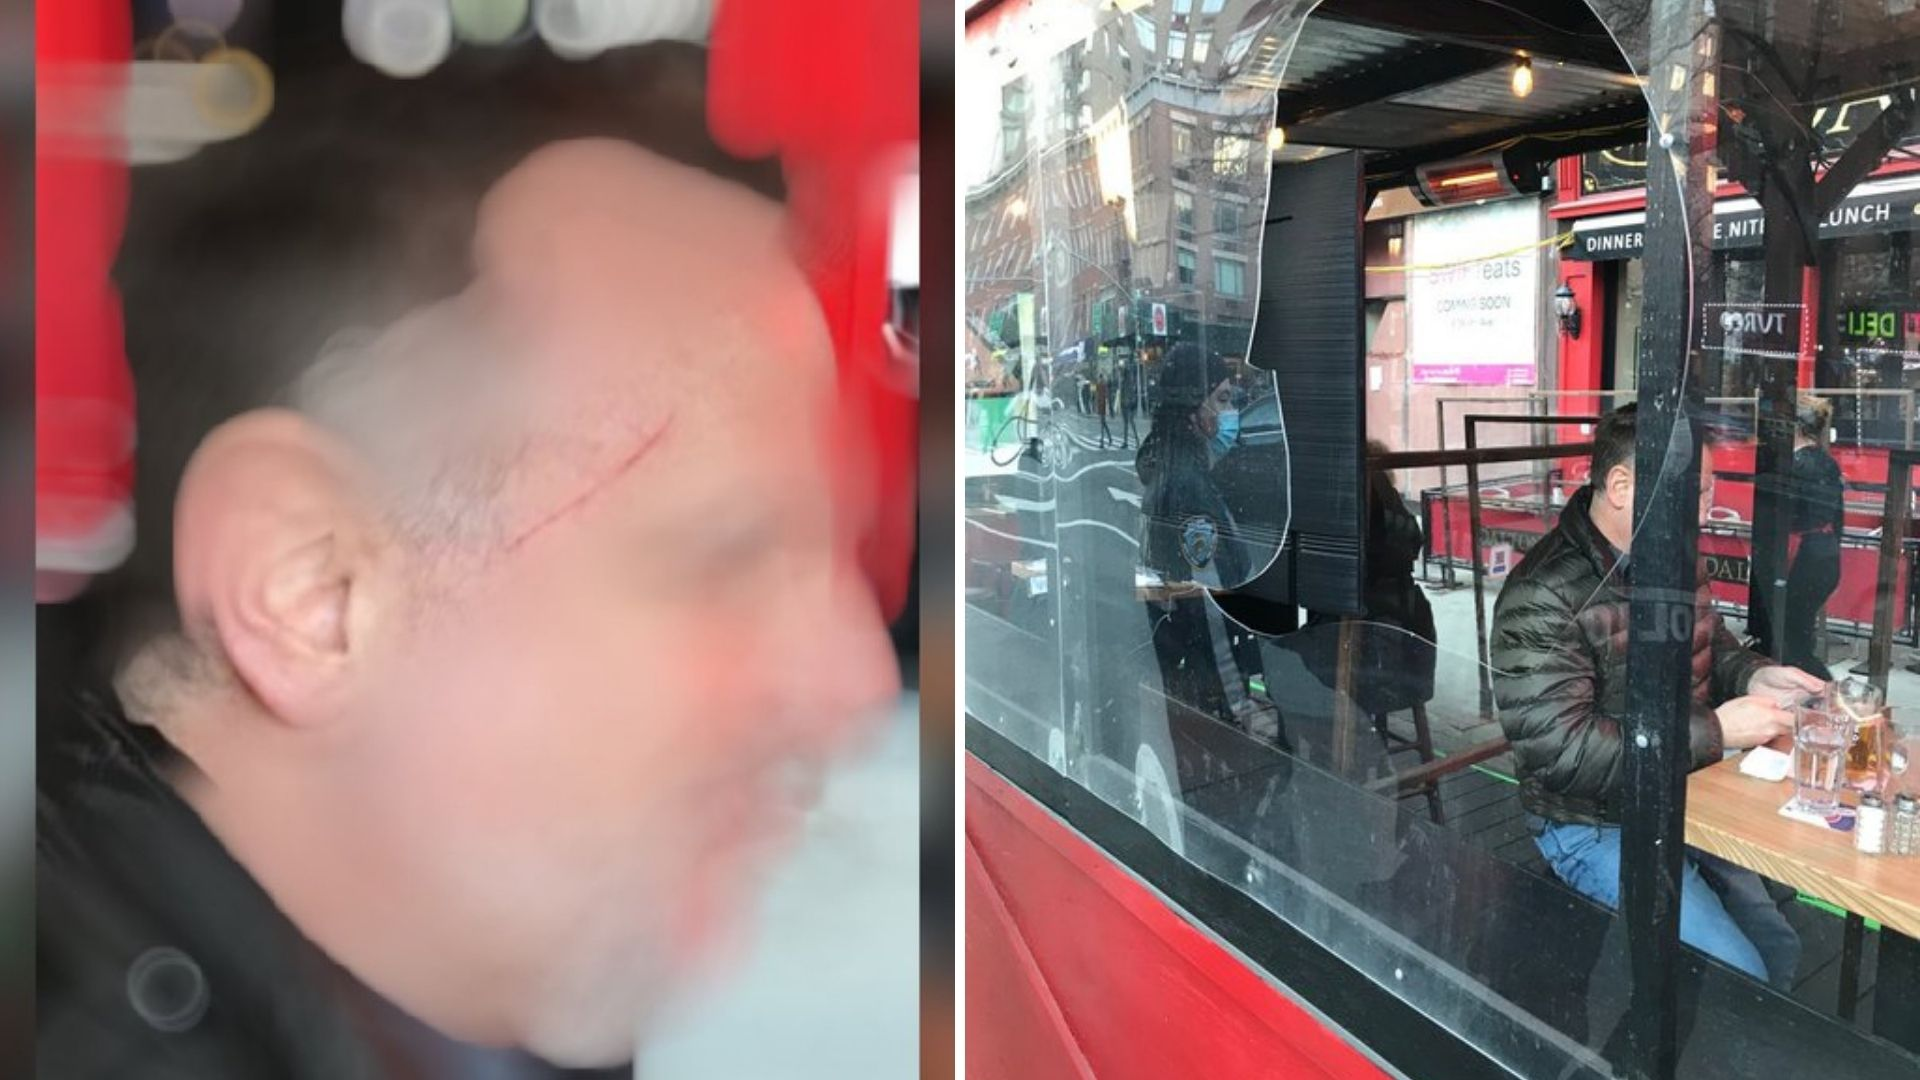 Man with cut on his face after protesters attack Manhattan restaurant